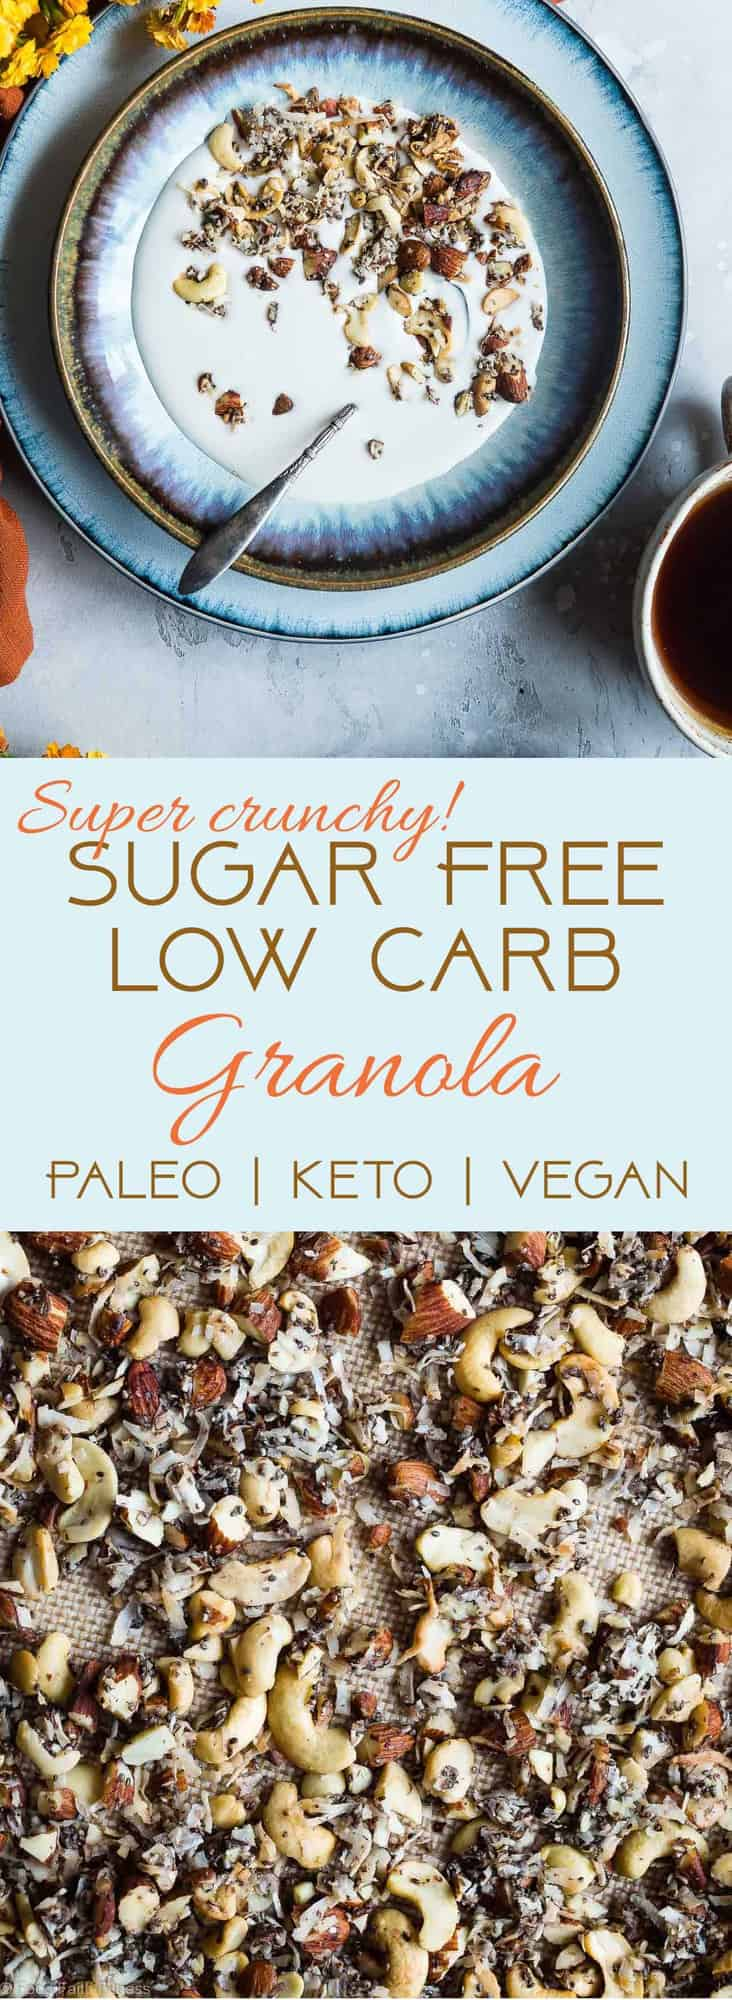 Coconut Cashew Low Carb Keto Granola -SO crispy and crunchy that you'll never guess it's secretly healthy, low carb, gluten and sugar free and paleo and vegan friendly! The perfect breakfast or snack that's great for meal prep! | #Foodfaithfitness | #Paleo #Vegan #Keto #Lowcarb #Healthy